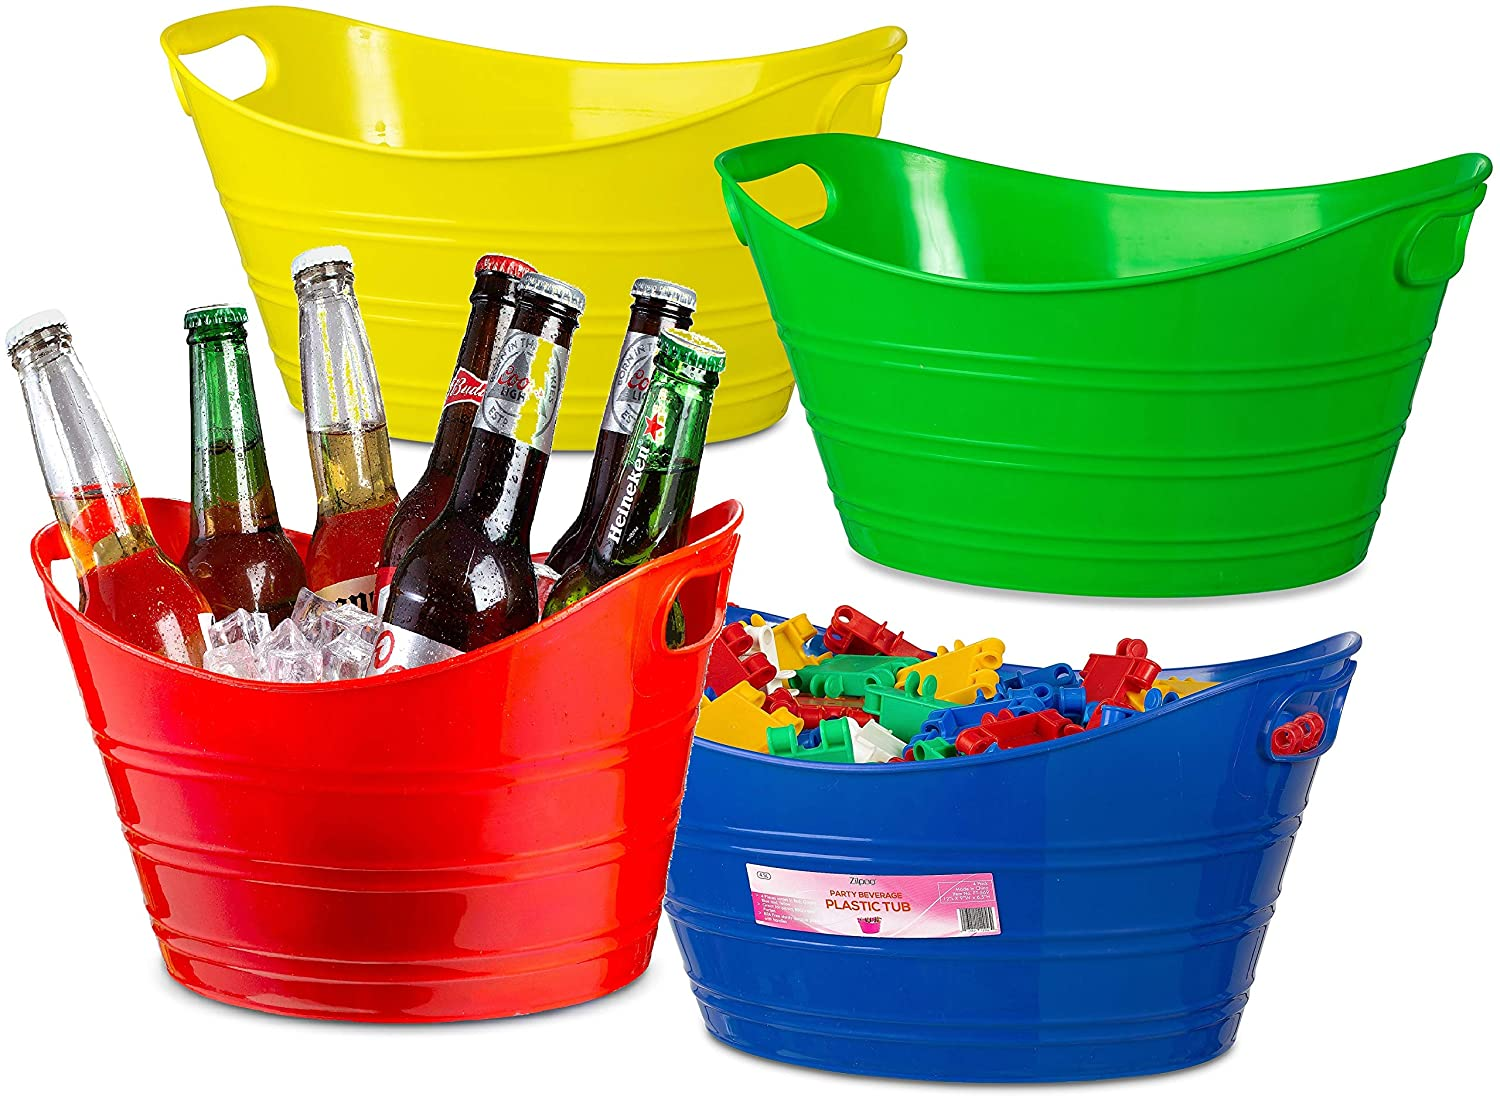 4 Pack - Oval Storage Tub with Handles, Colorful Classroom Organization Bins, Plastic Ice Bucket, Party Beverage Chiller Tubs, 4.5L, Assorted Colored